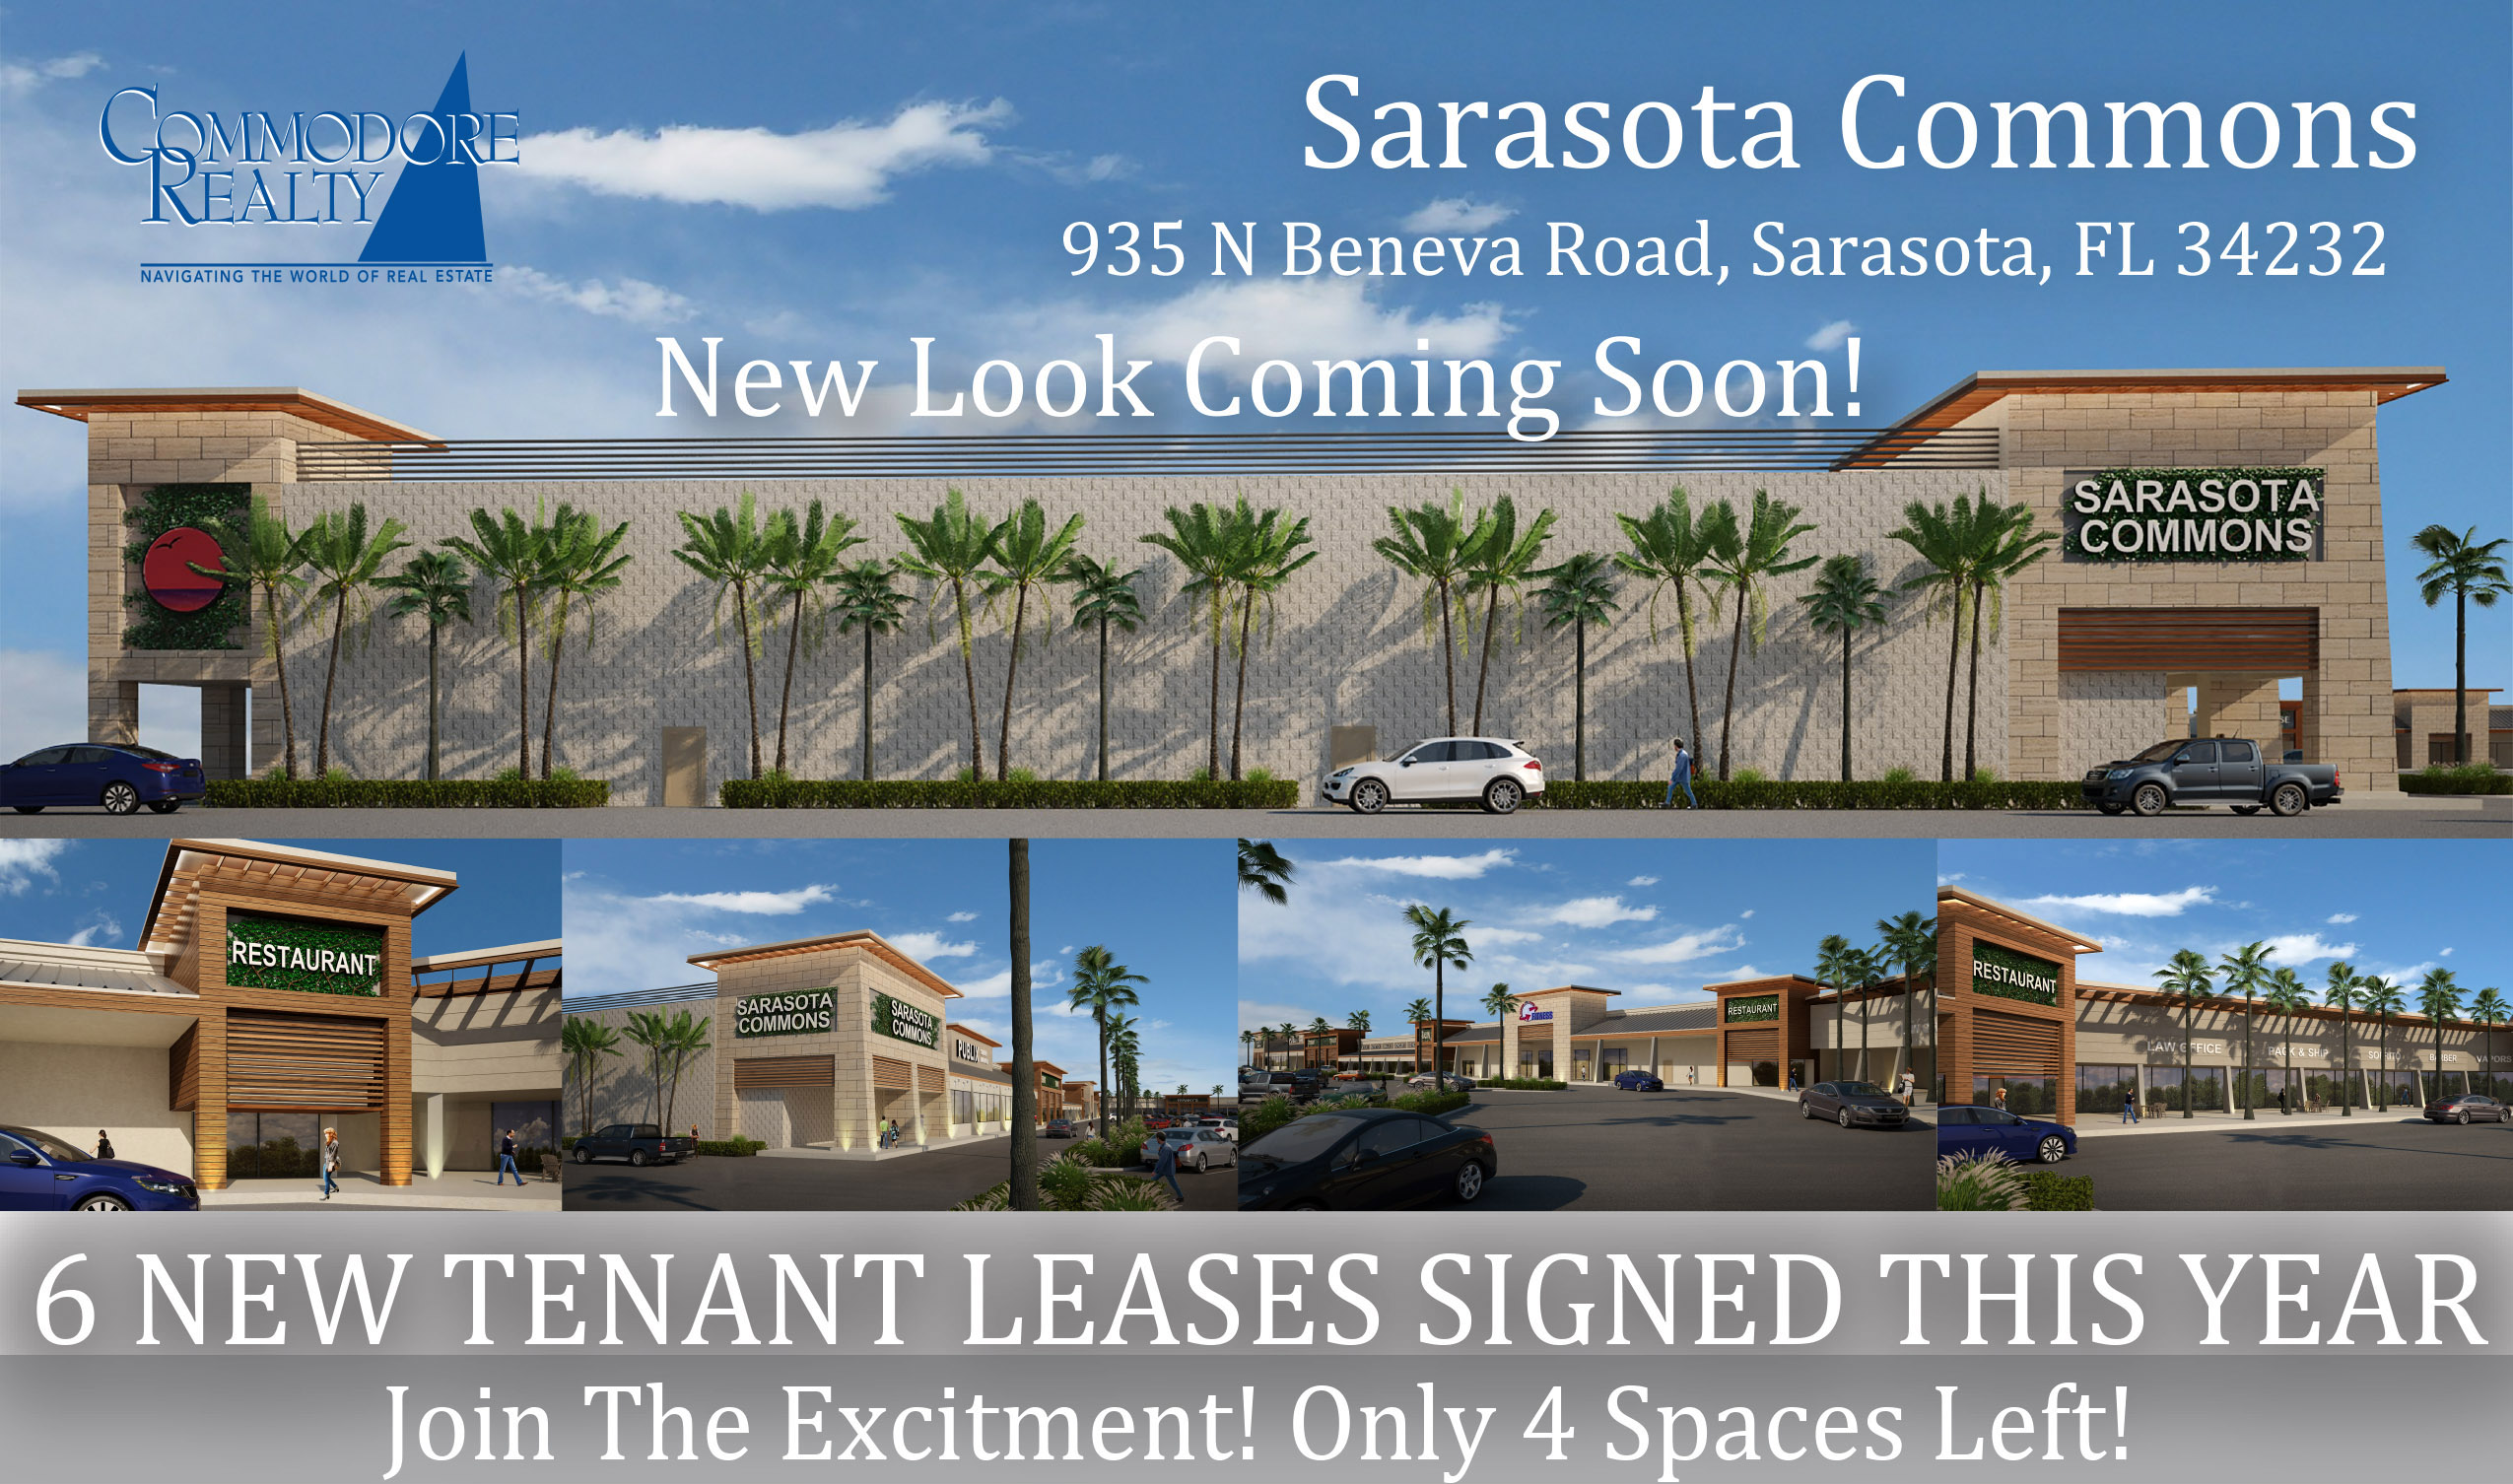 6 New Tenant Leases Signed This Year!